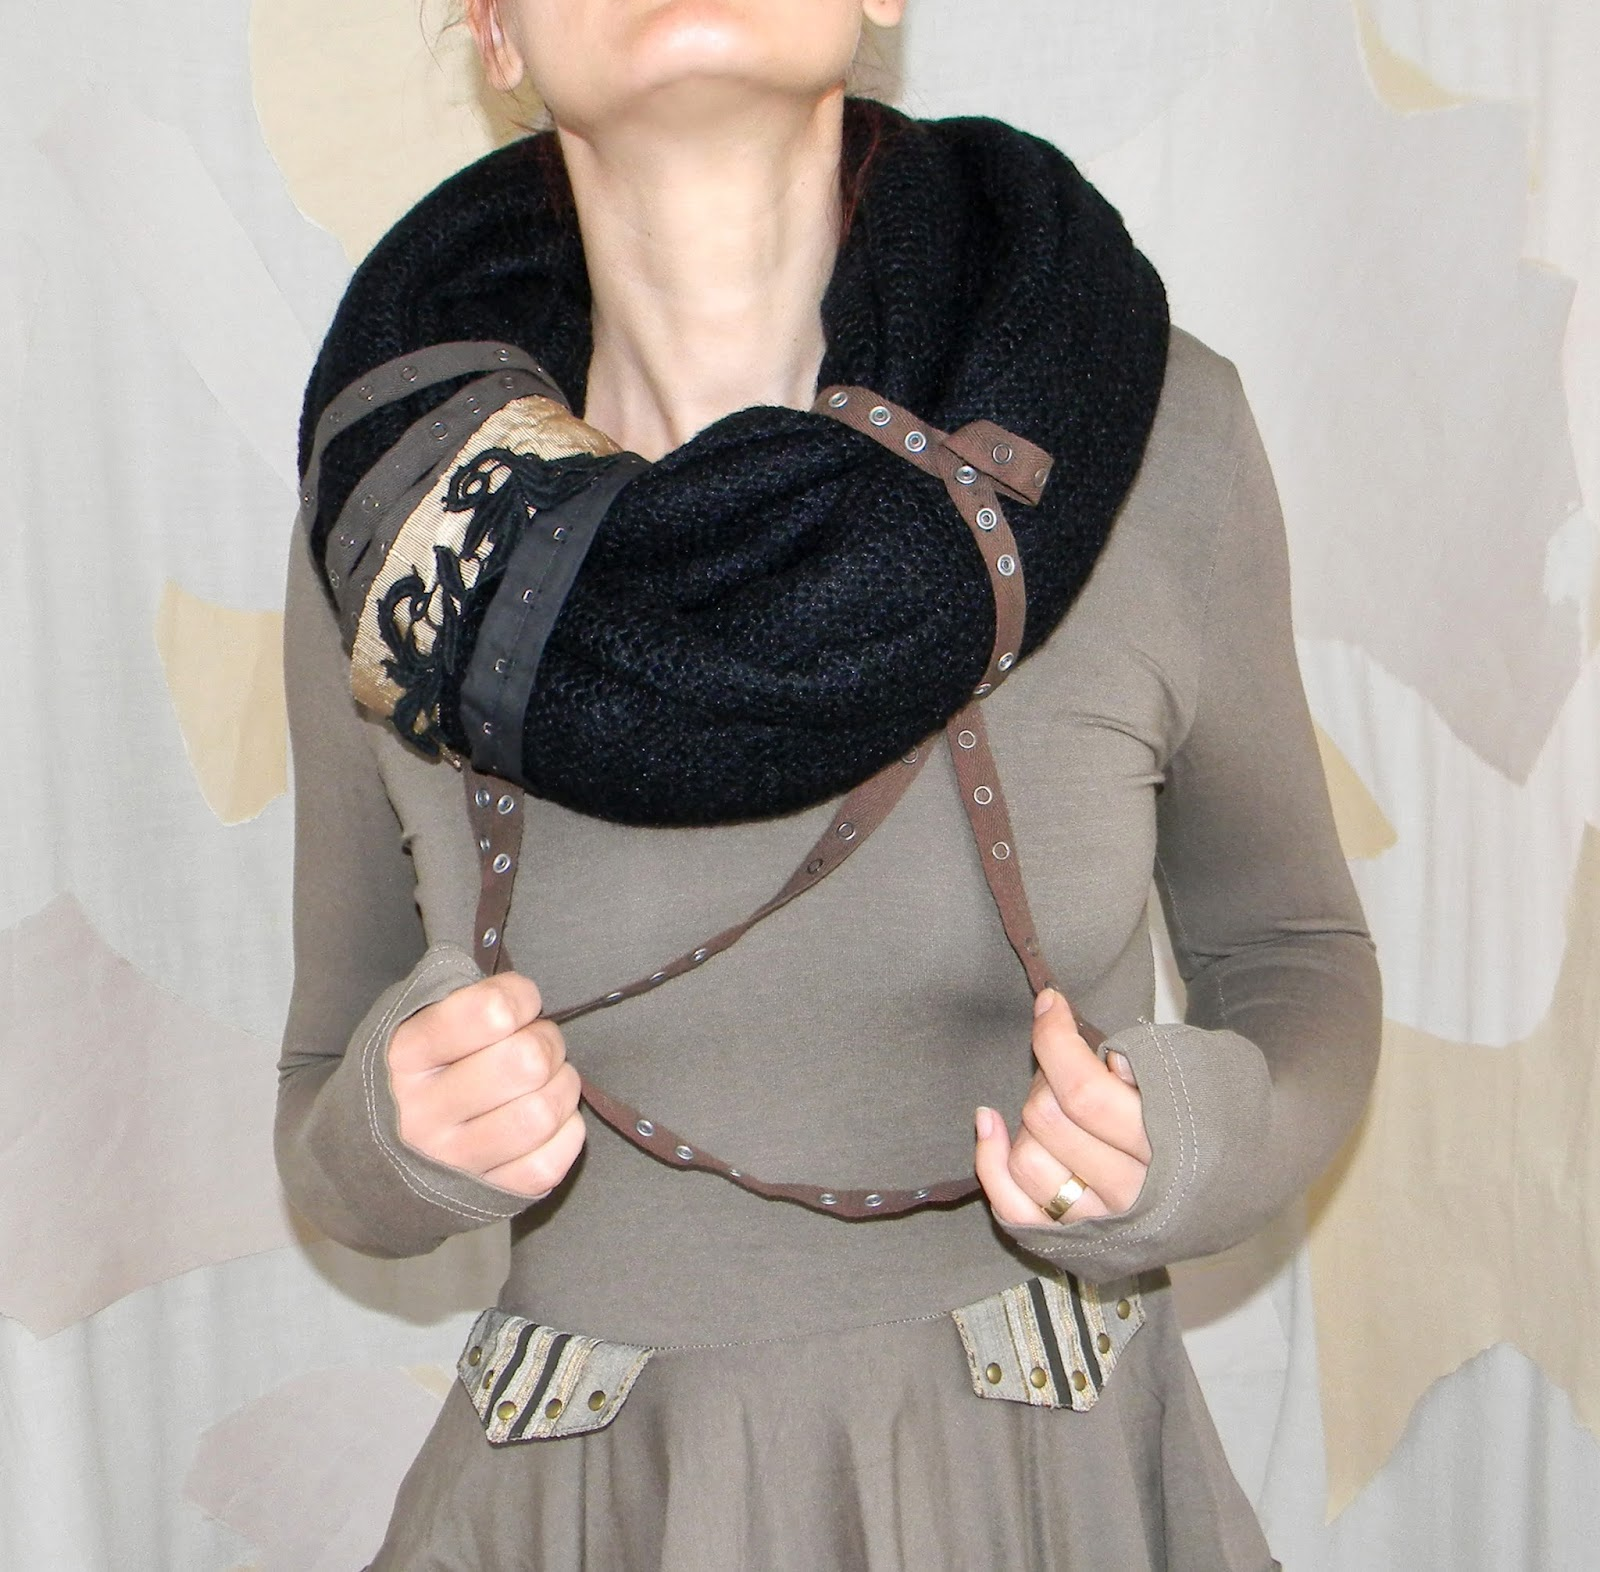 Infinity Black Knit Neck Warmer Circle Knit Fashion Scarf with Military Chic Applique